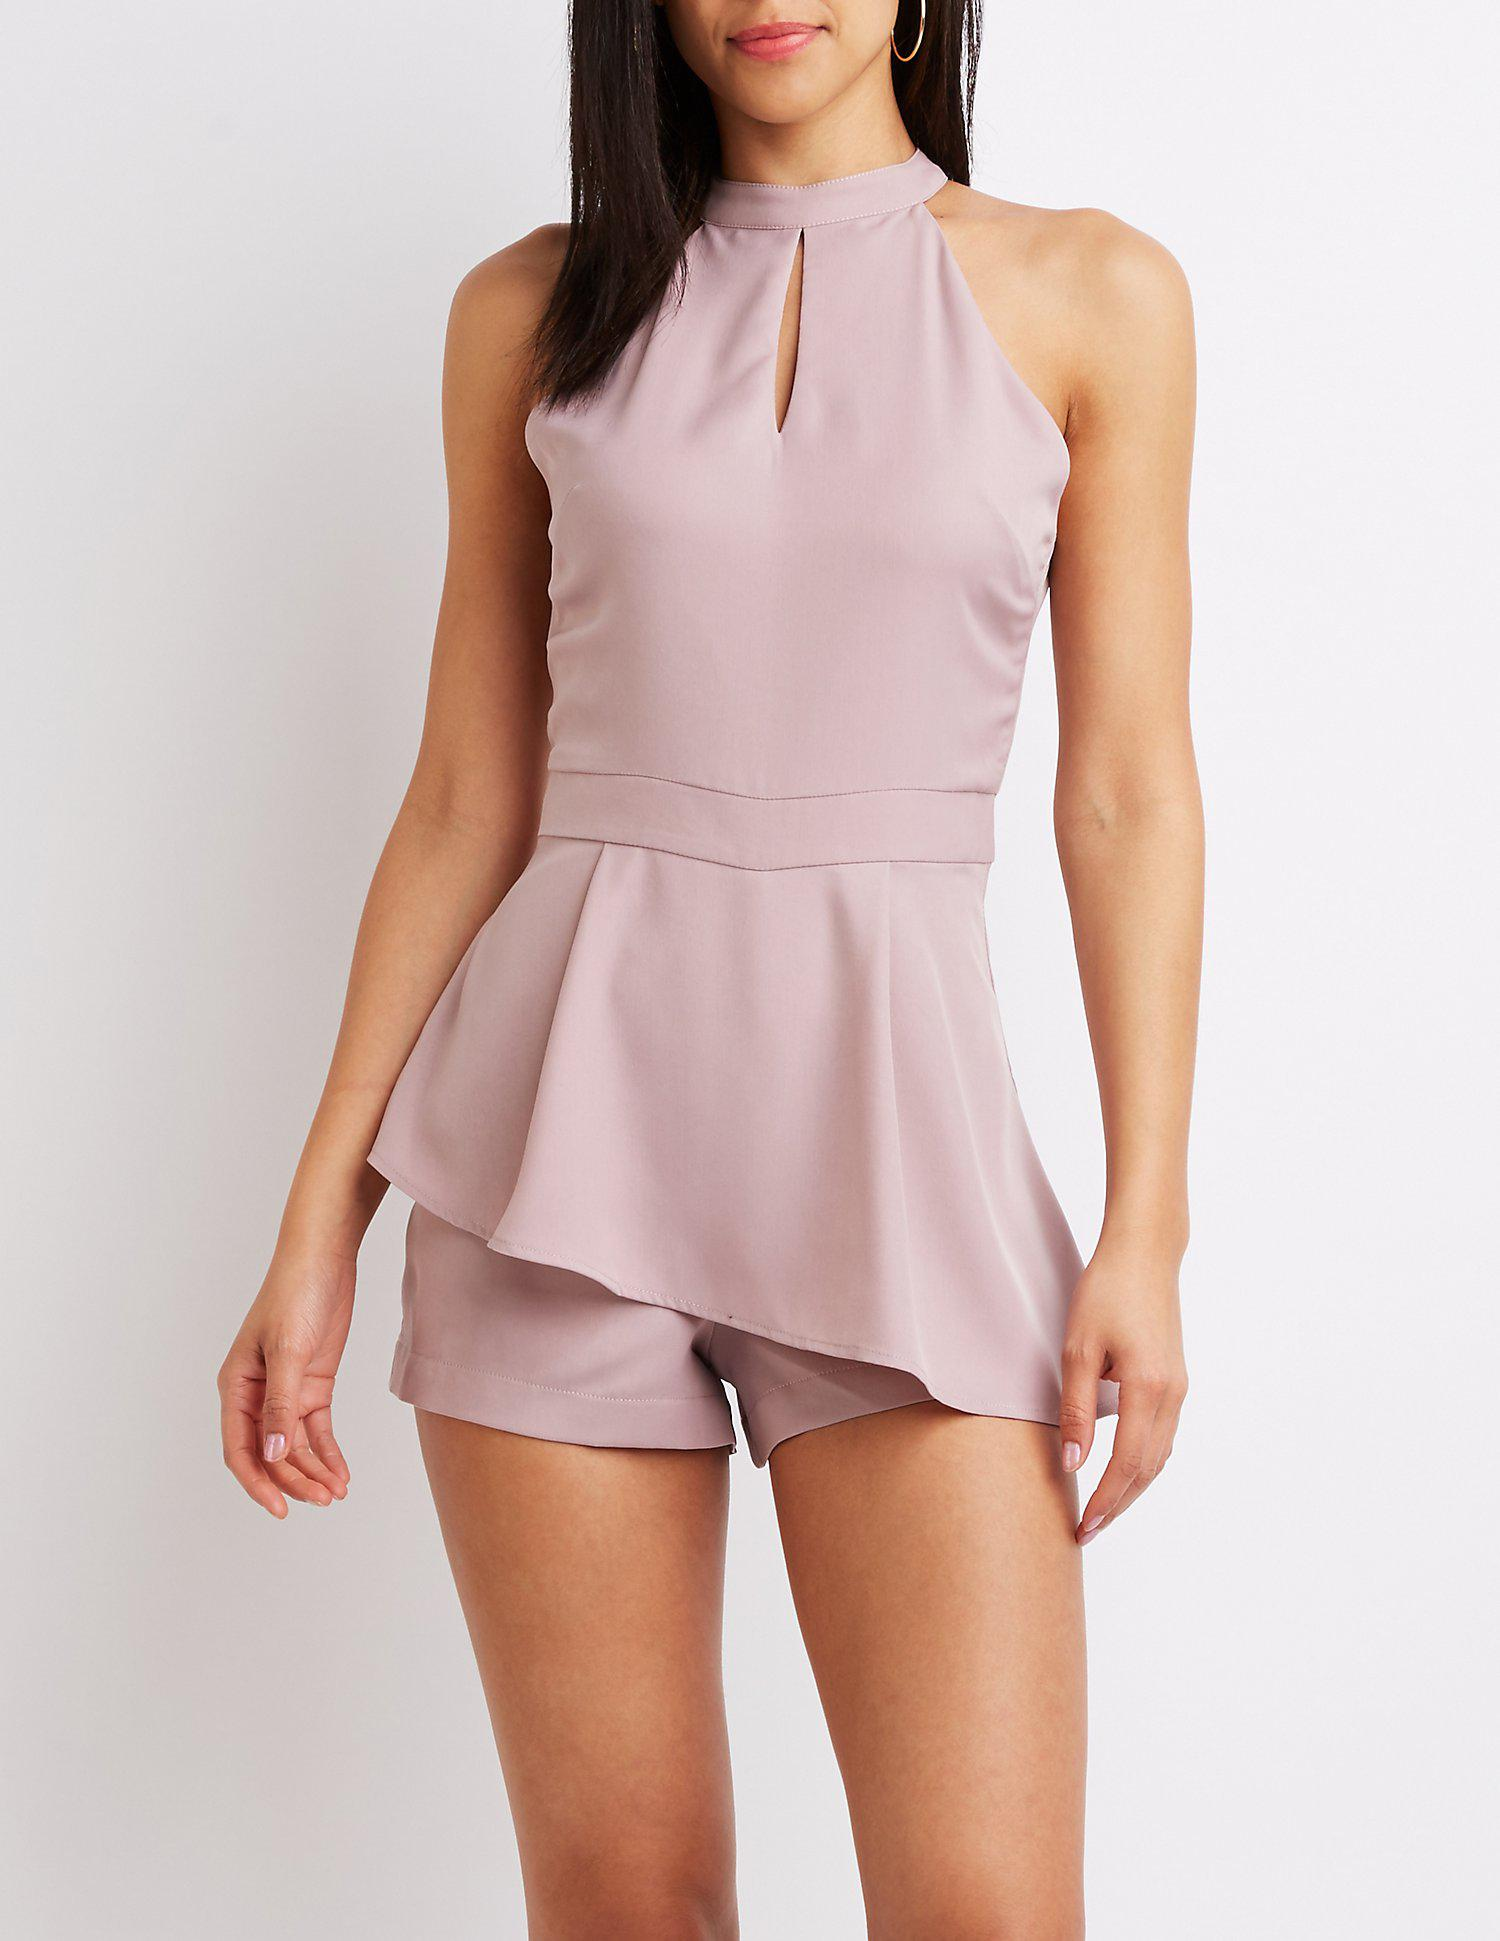 7712f292e3d Lyst - Charlotte Russe Mock Neck Skort Romper in Purple - Save ...